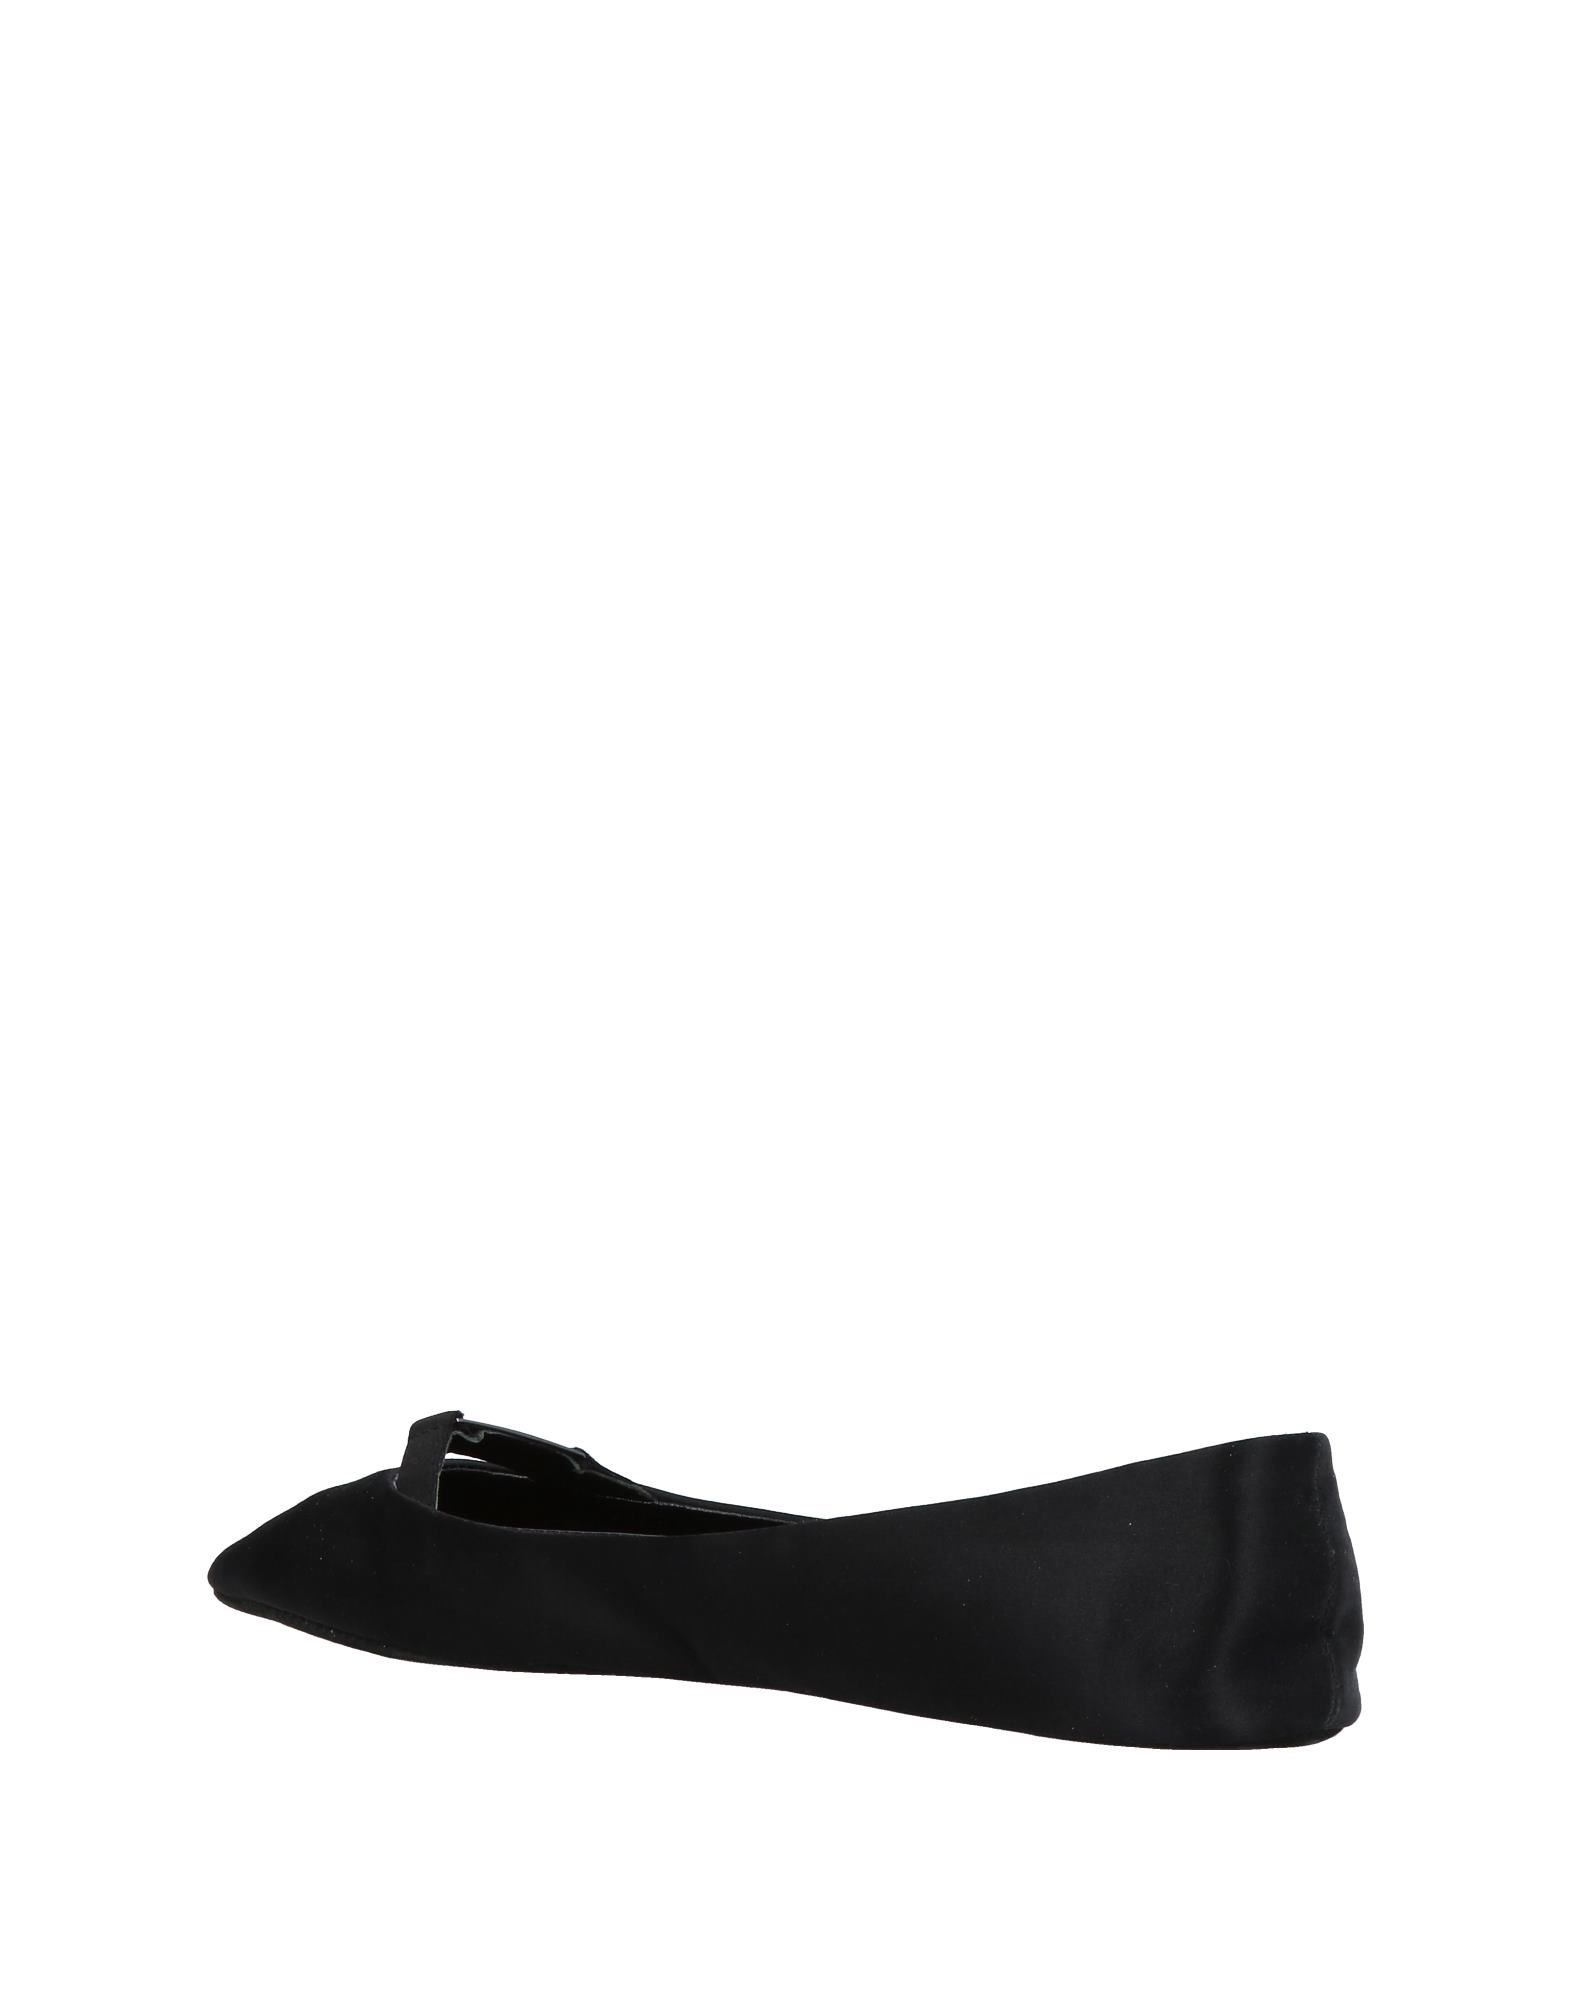 Chaussons Burberry Femme - Chaussons Burberry sur